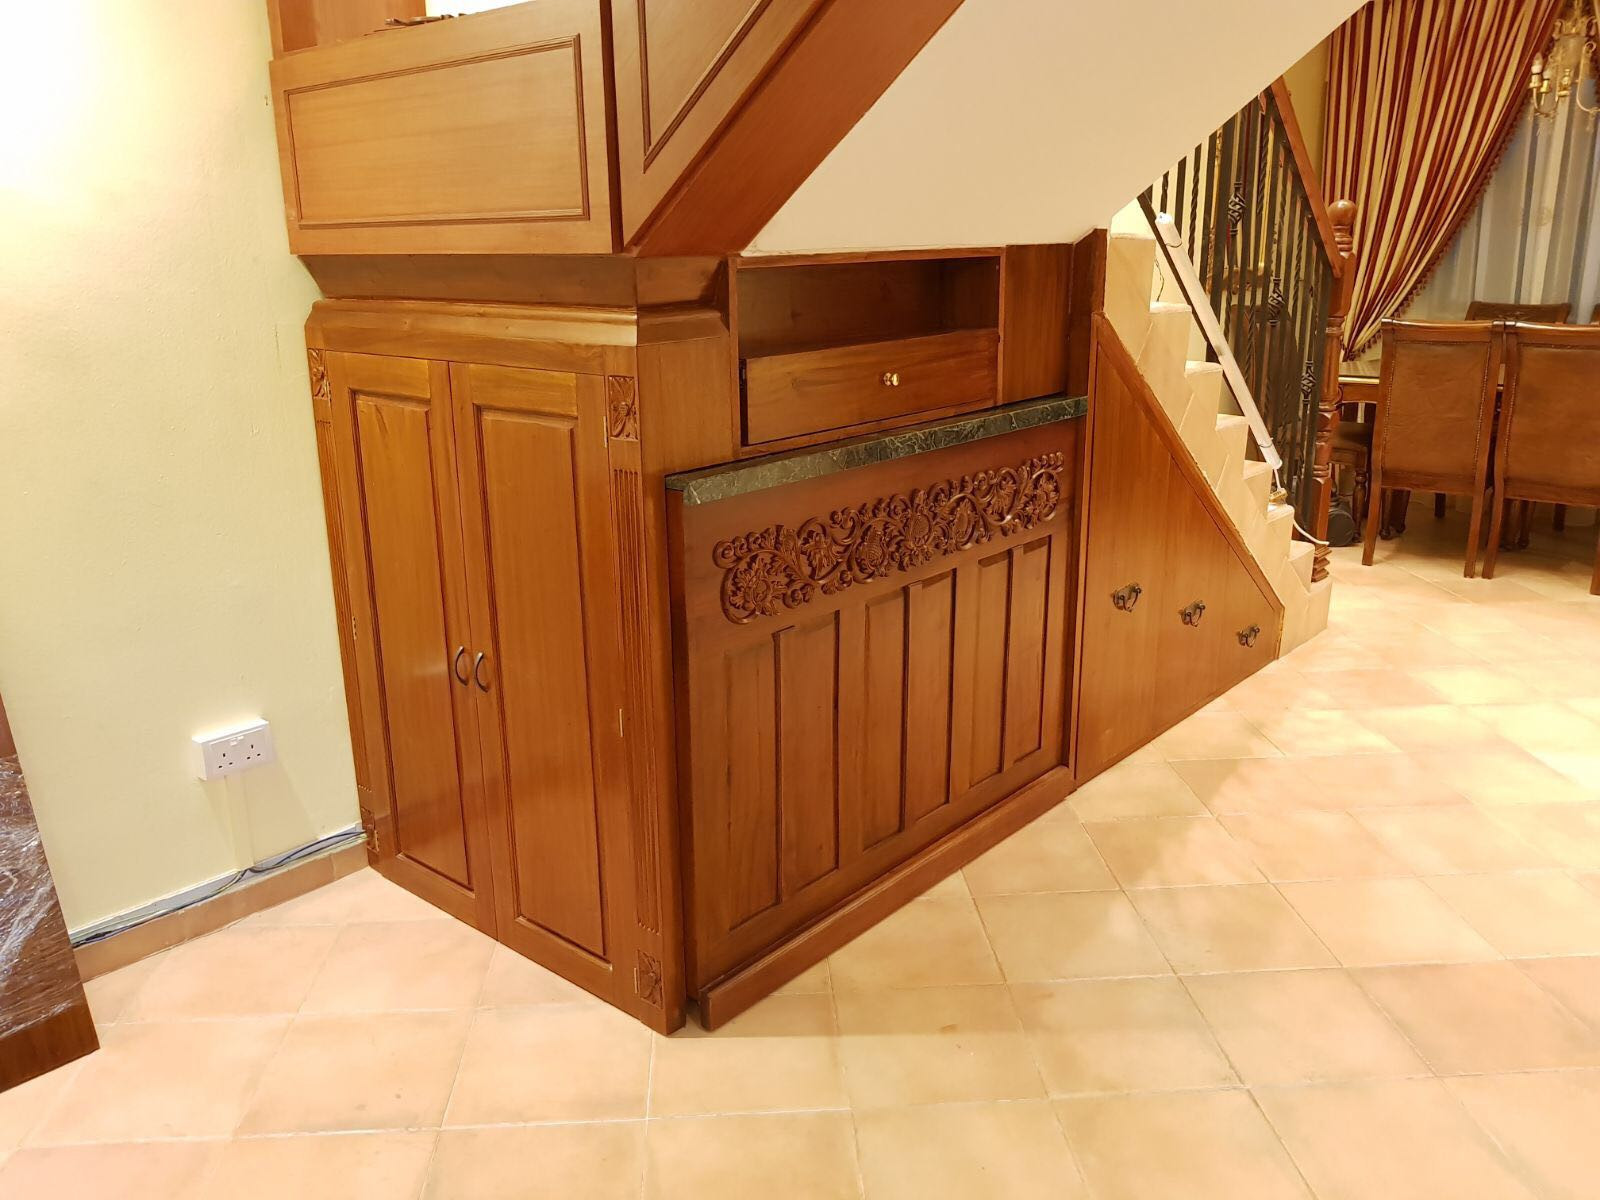 Mrs Lims Movable Bar Counter Stairs Fixture